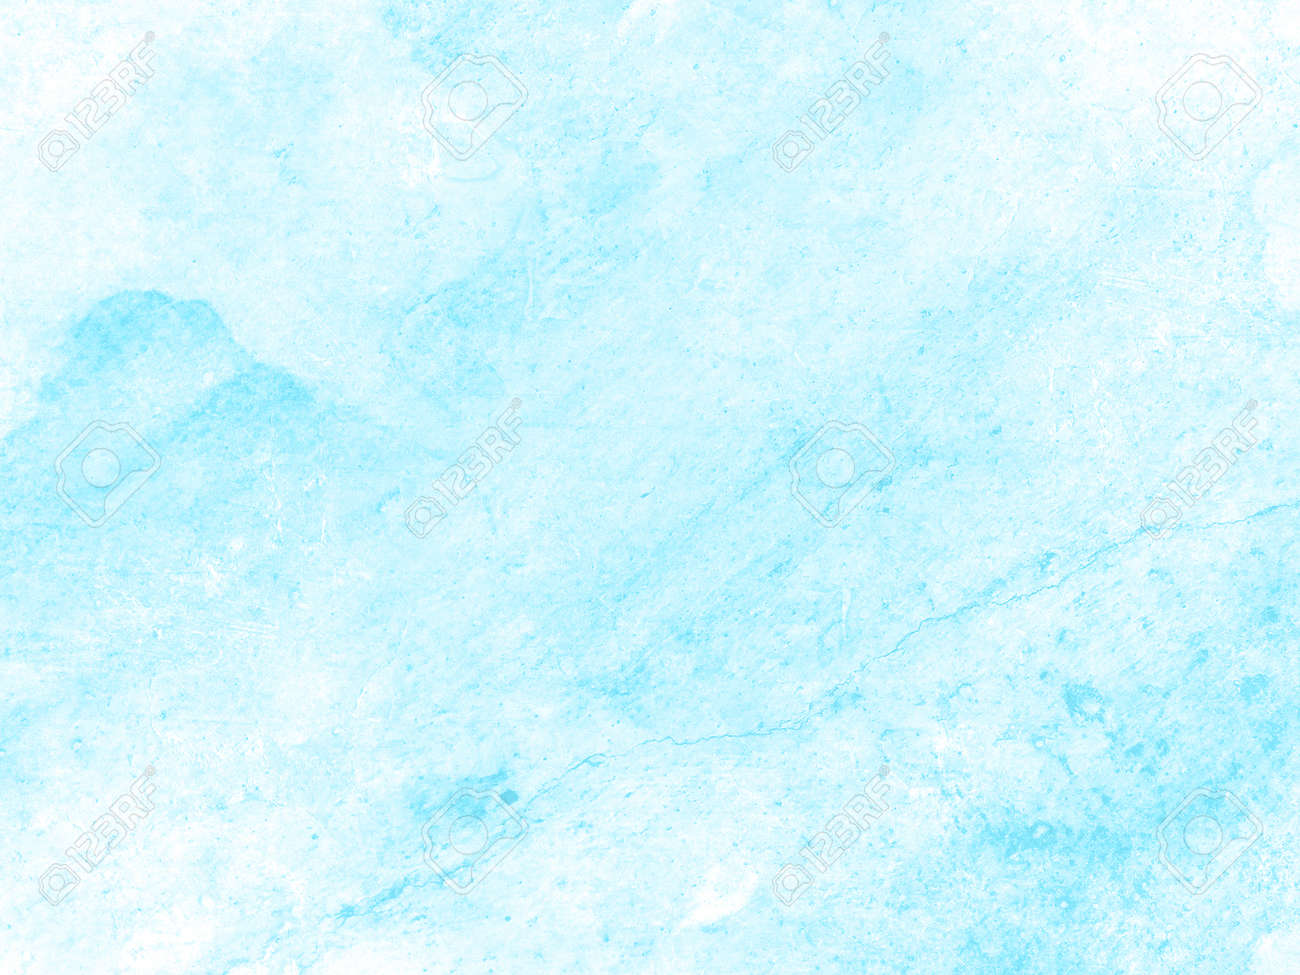 Pastel Background In Light Blue Watercolor Abstract Aquarelle Stock Photo Picture And Royalty Free Image Image 117803061